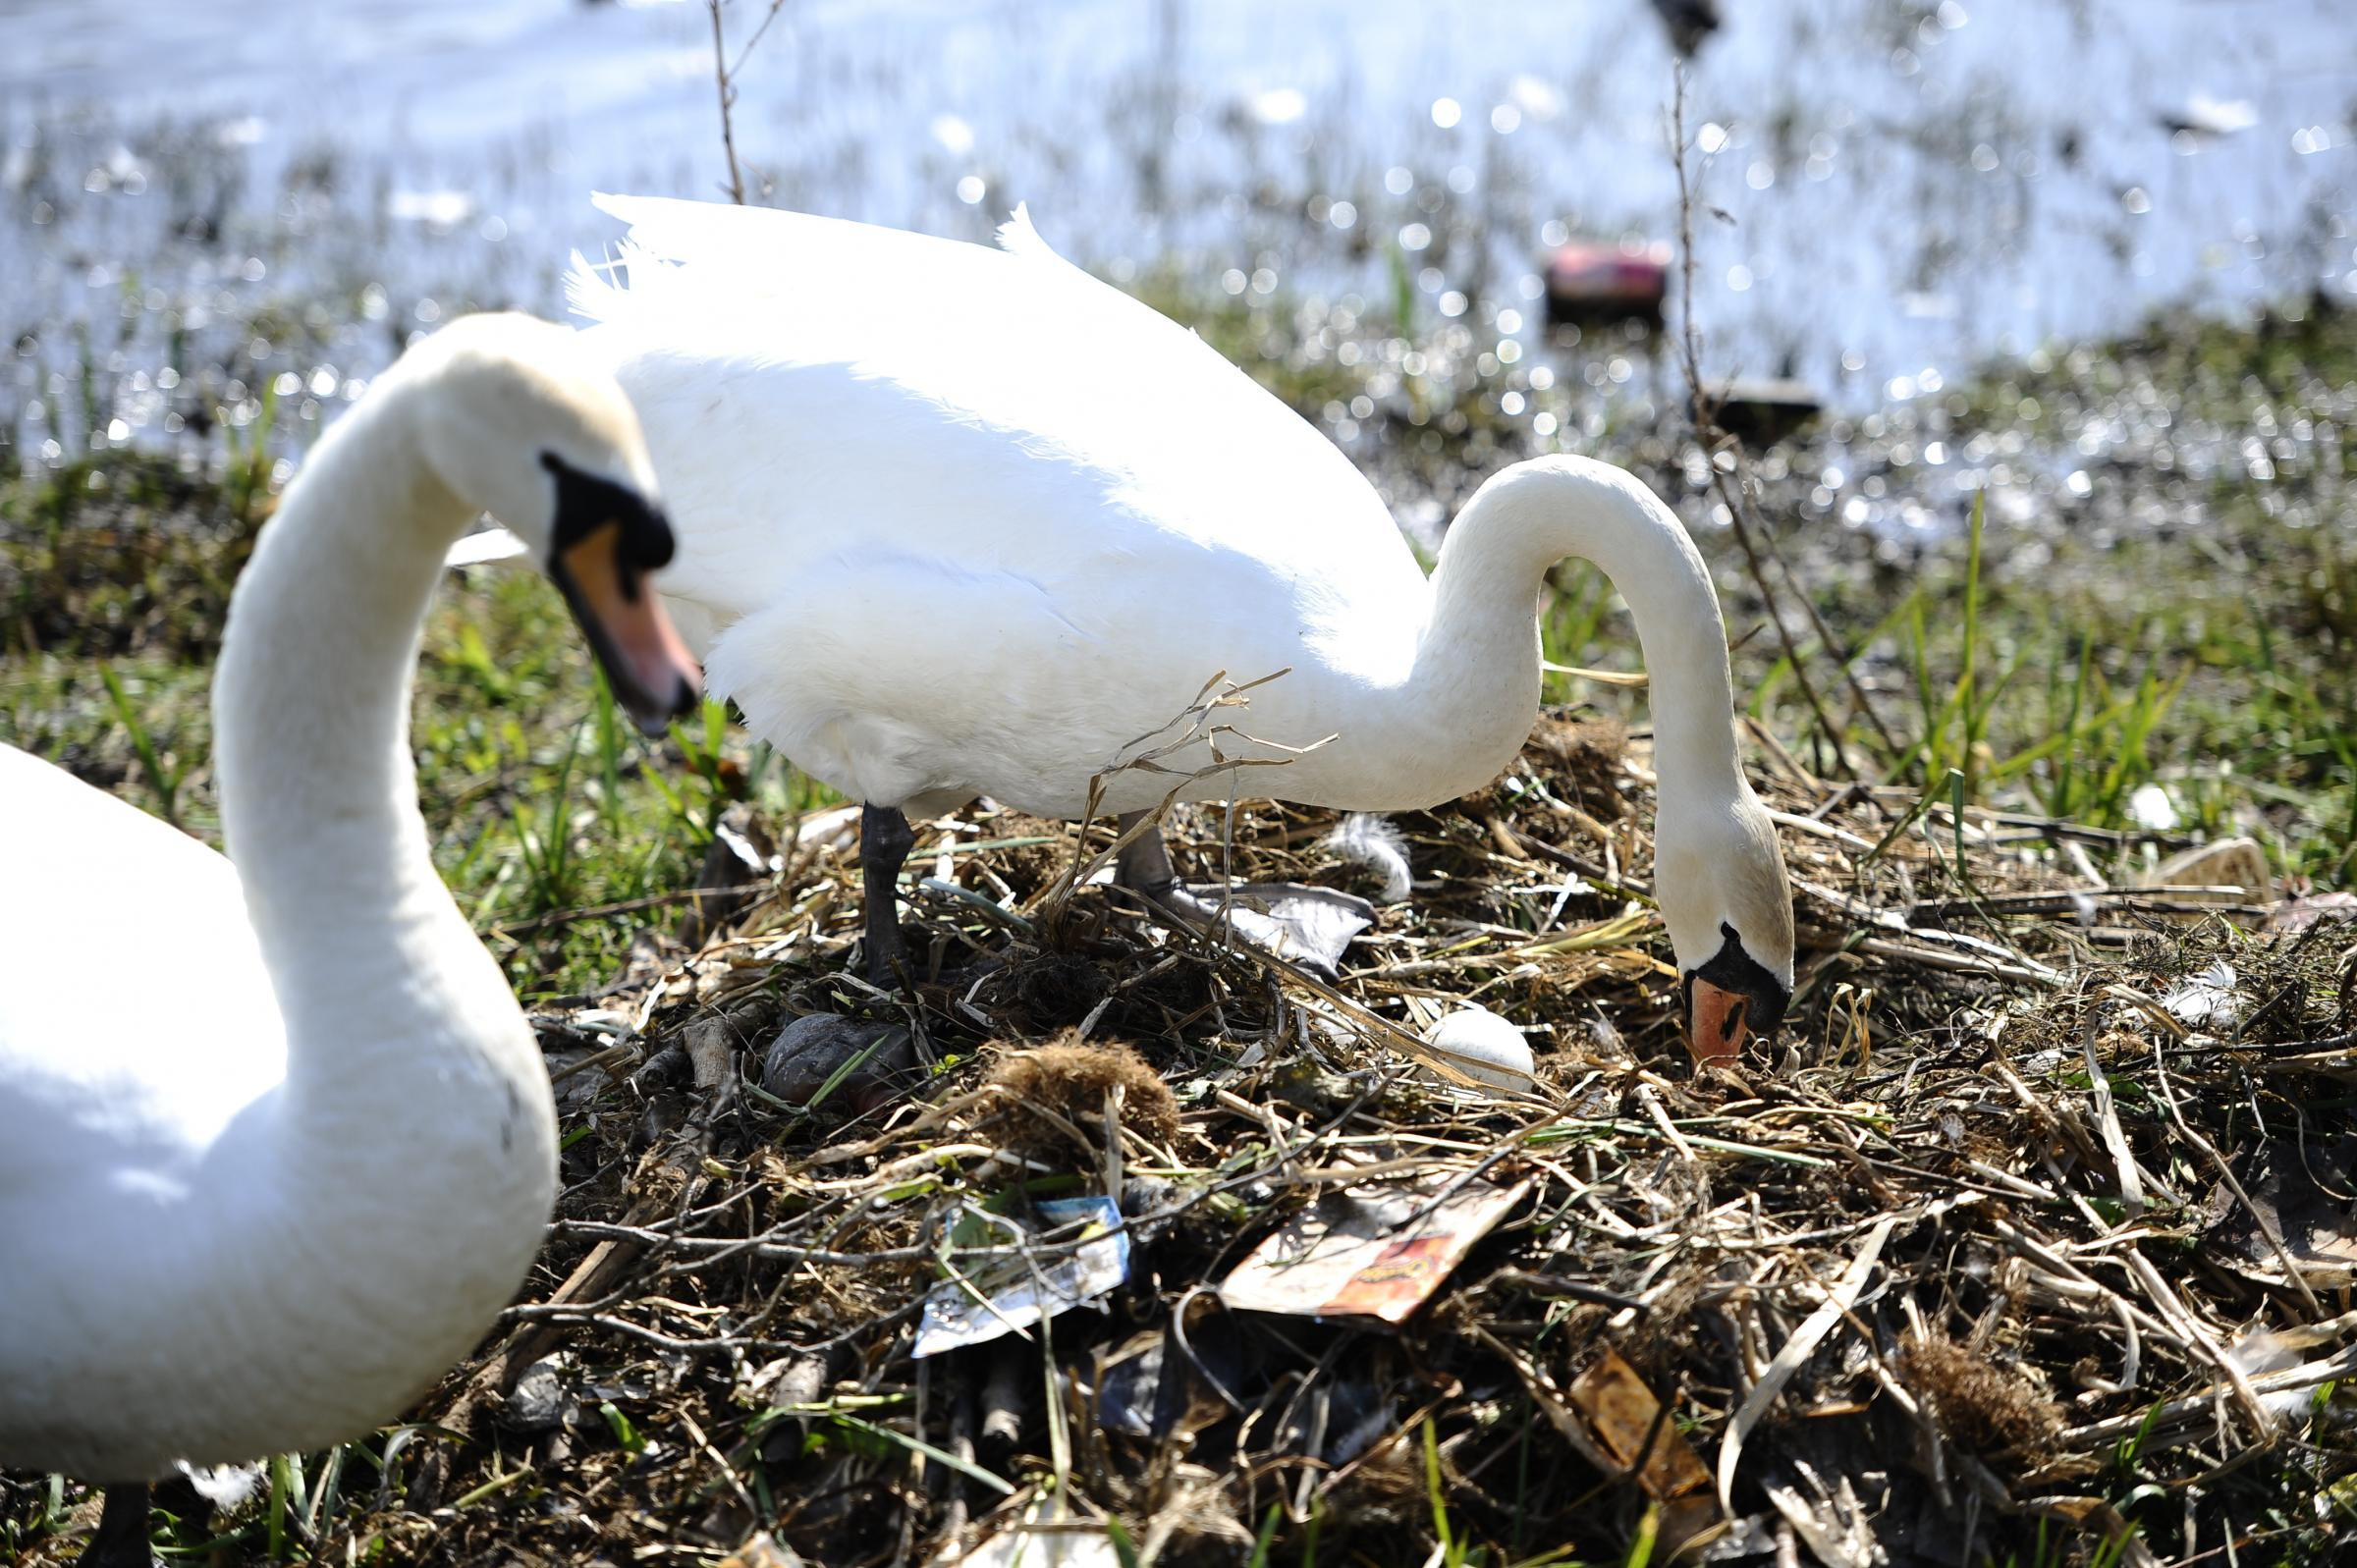 Anger at swans nesting in rubbish in Scottish park